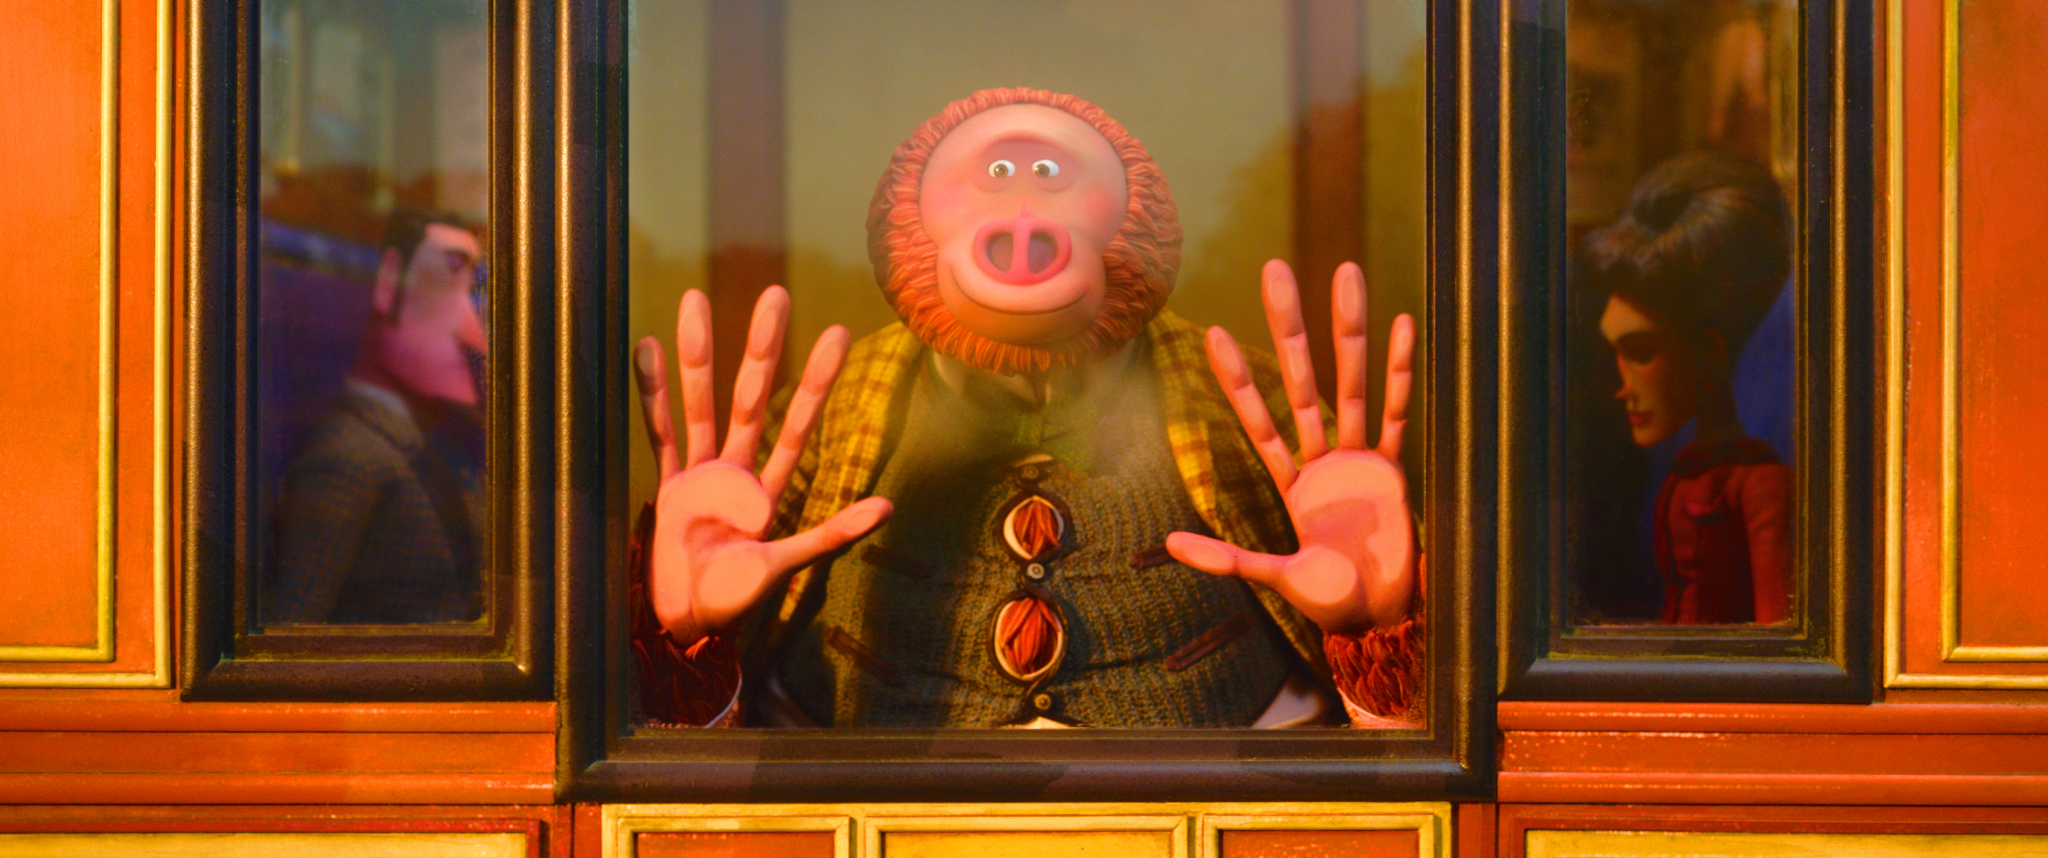 Mr. Link (voiced by Zach Galifianakis) in Pixar's Missing Link.